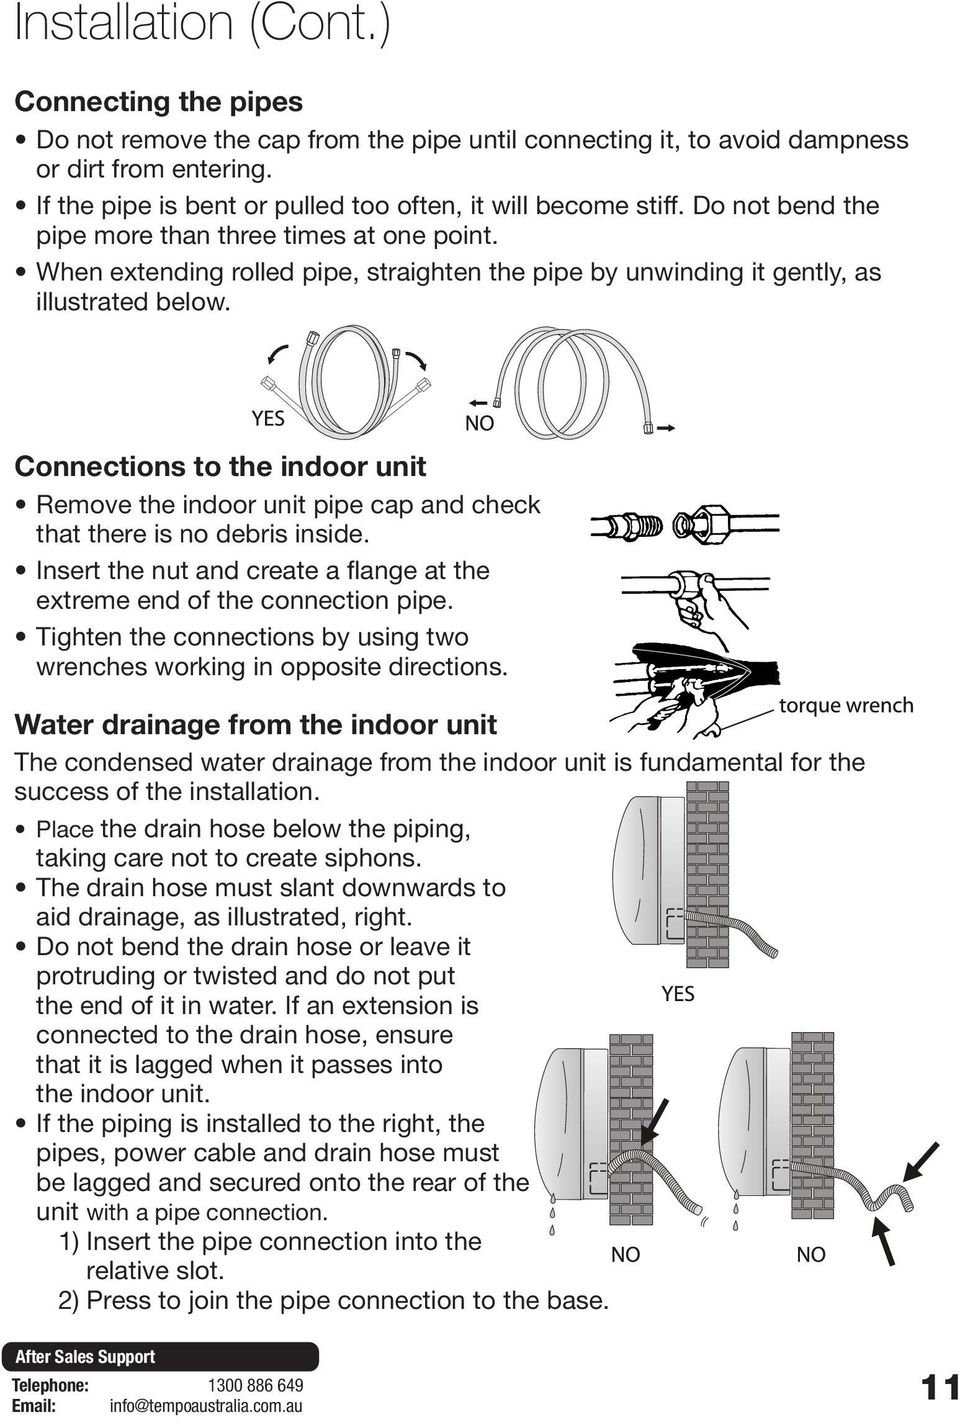 When extending rolled pipe, straighten the pipe by unwinding it gently, as illustrated below. Connections to the indoor unit Remove the indoor unit pipe cap and check that there is no debris inside.